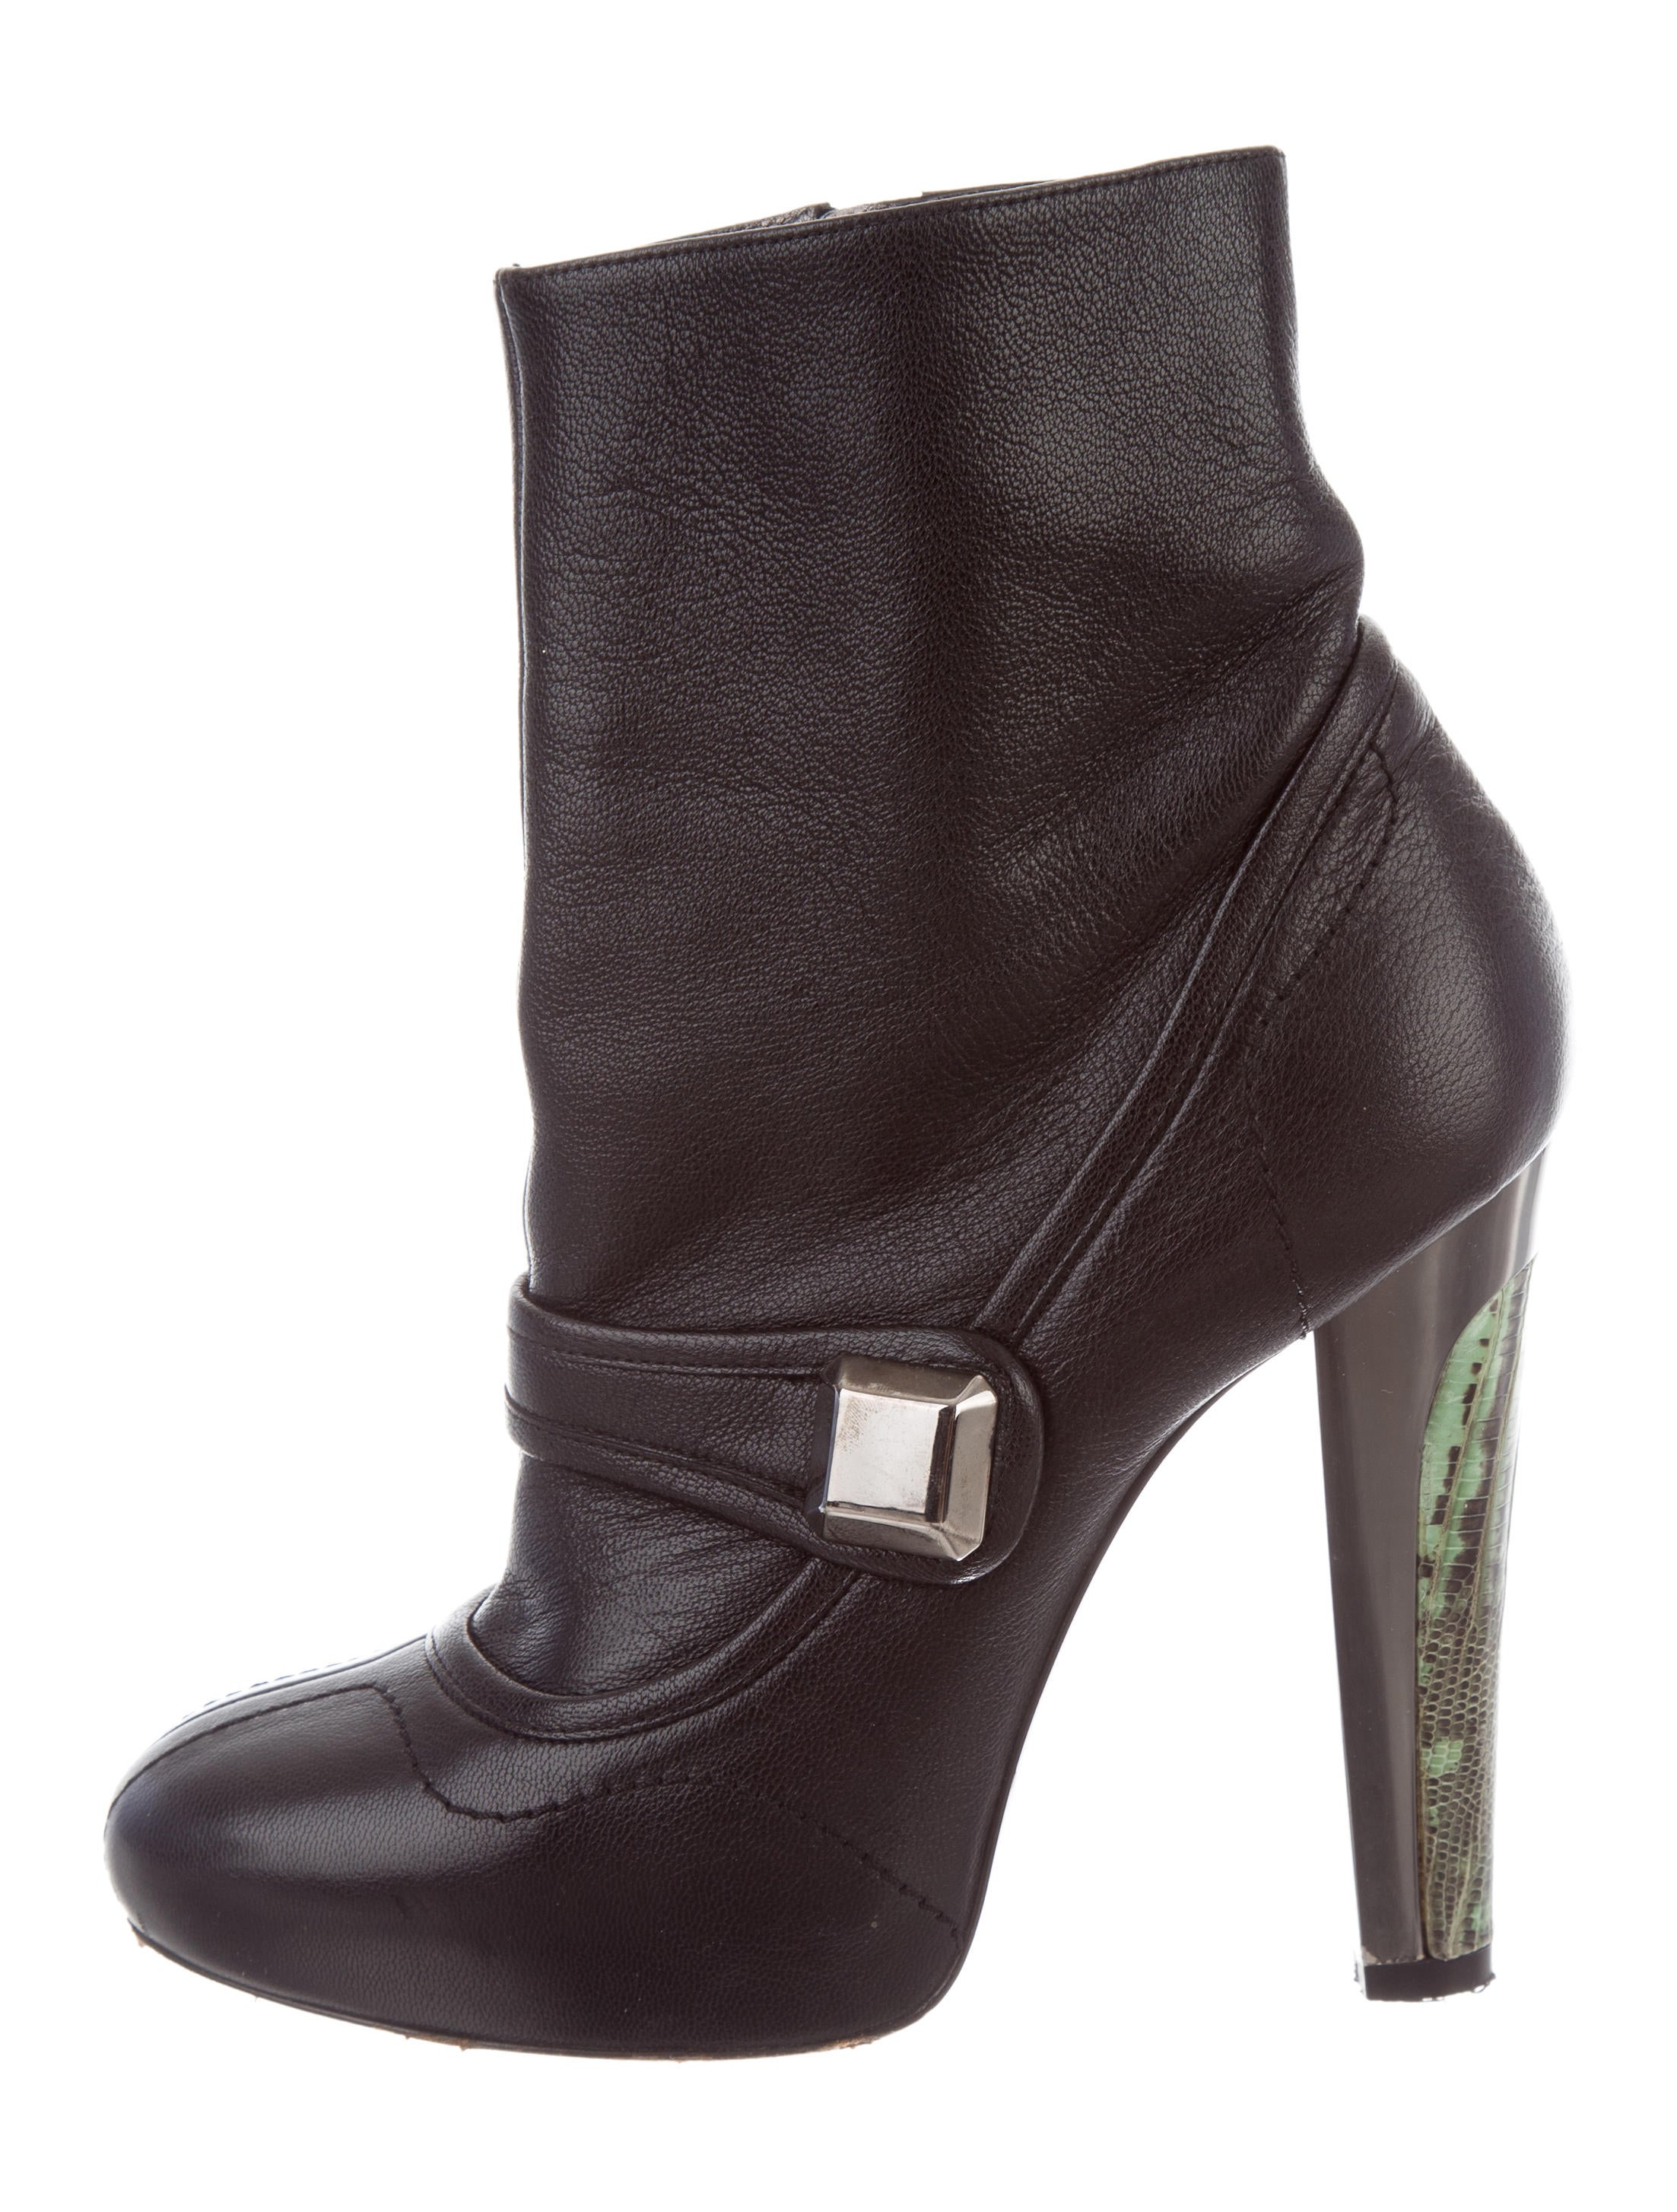 Barbara Bui Leather Round-Toe Ankle Boots cheap sale visit PWjz2P